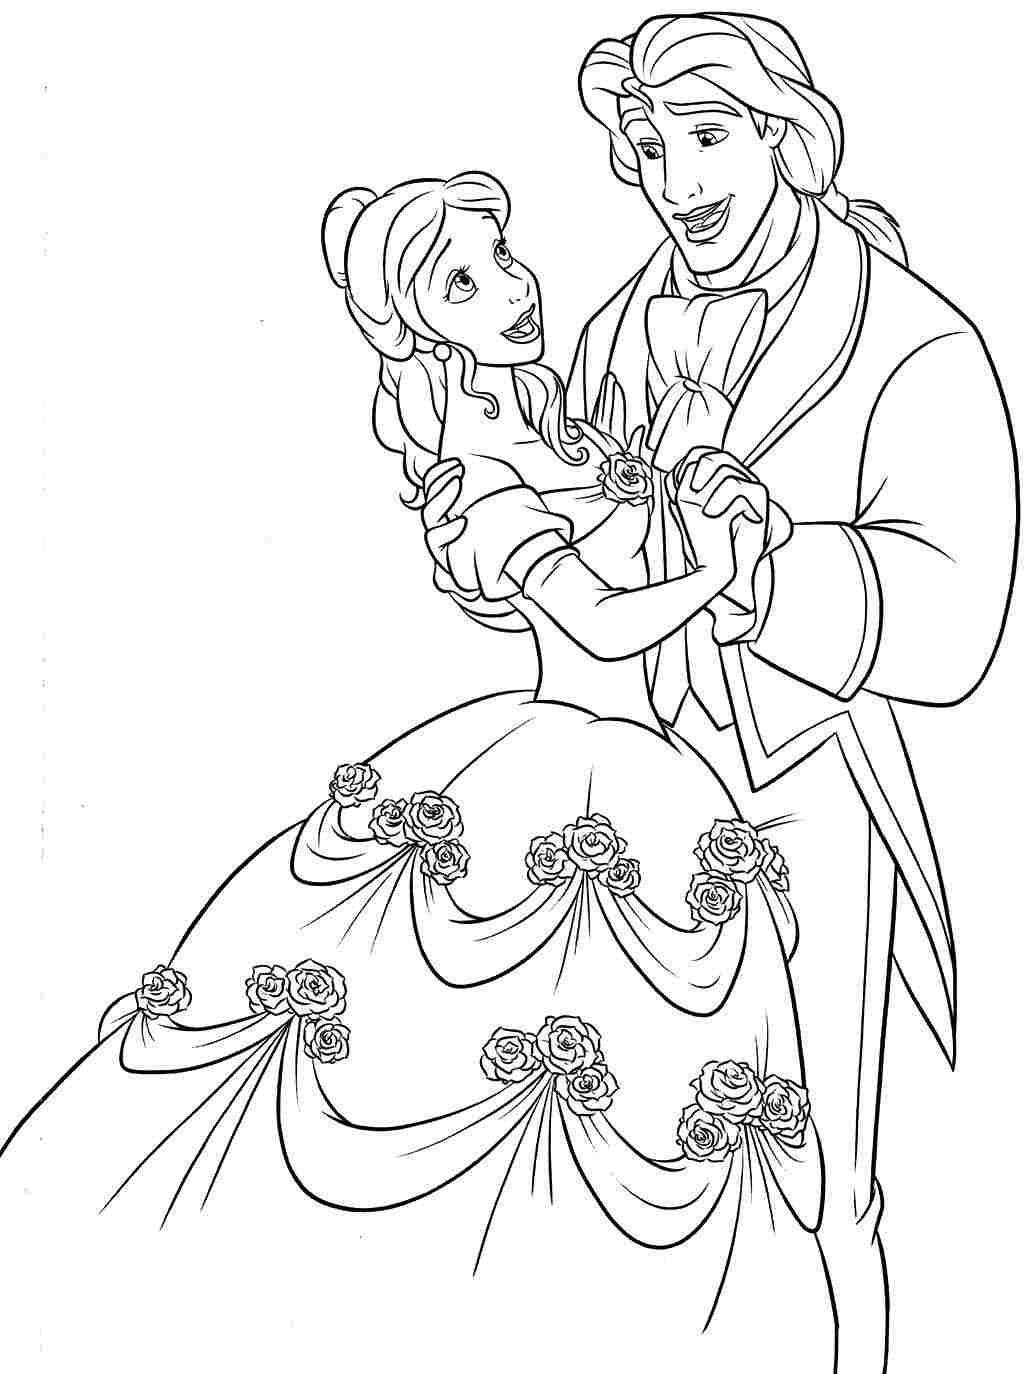 Beauty And Beast Coloring Pages Disney Beauty And The Beast Coloring Pages Belle Coloring Pages Disney Coloring Pages Fairy Coloring Pages